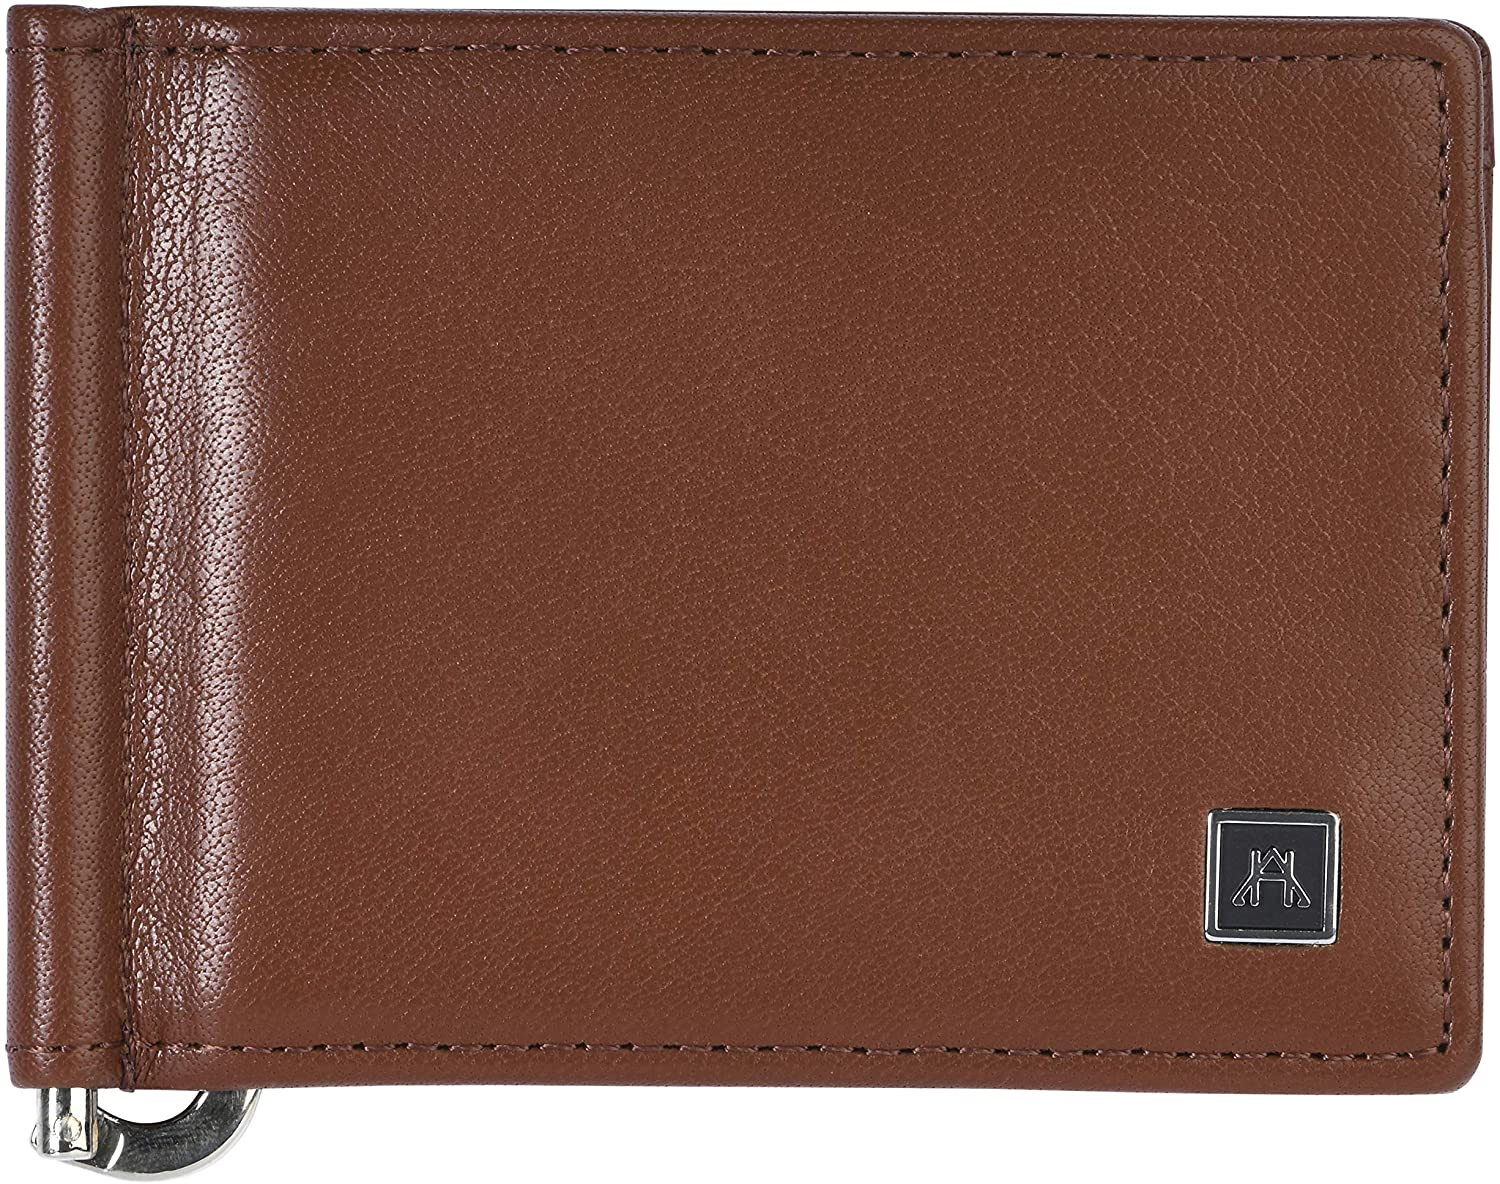 A&H Leather Goods RFID Men's Slim Money Clip Wallet Full Grain Leather